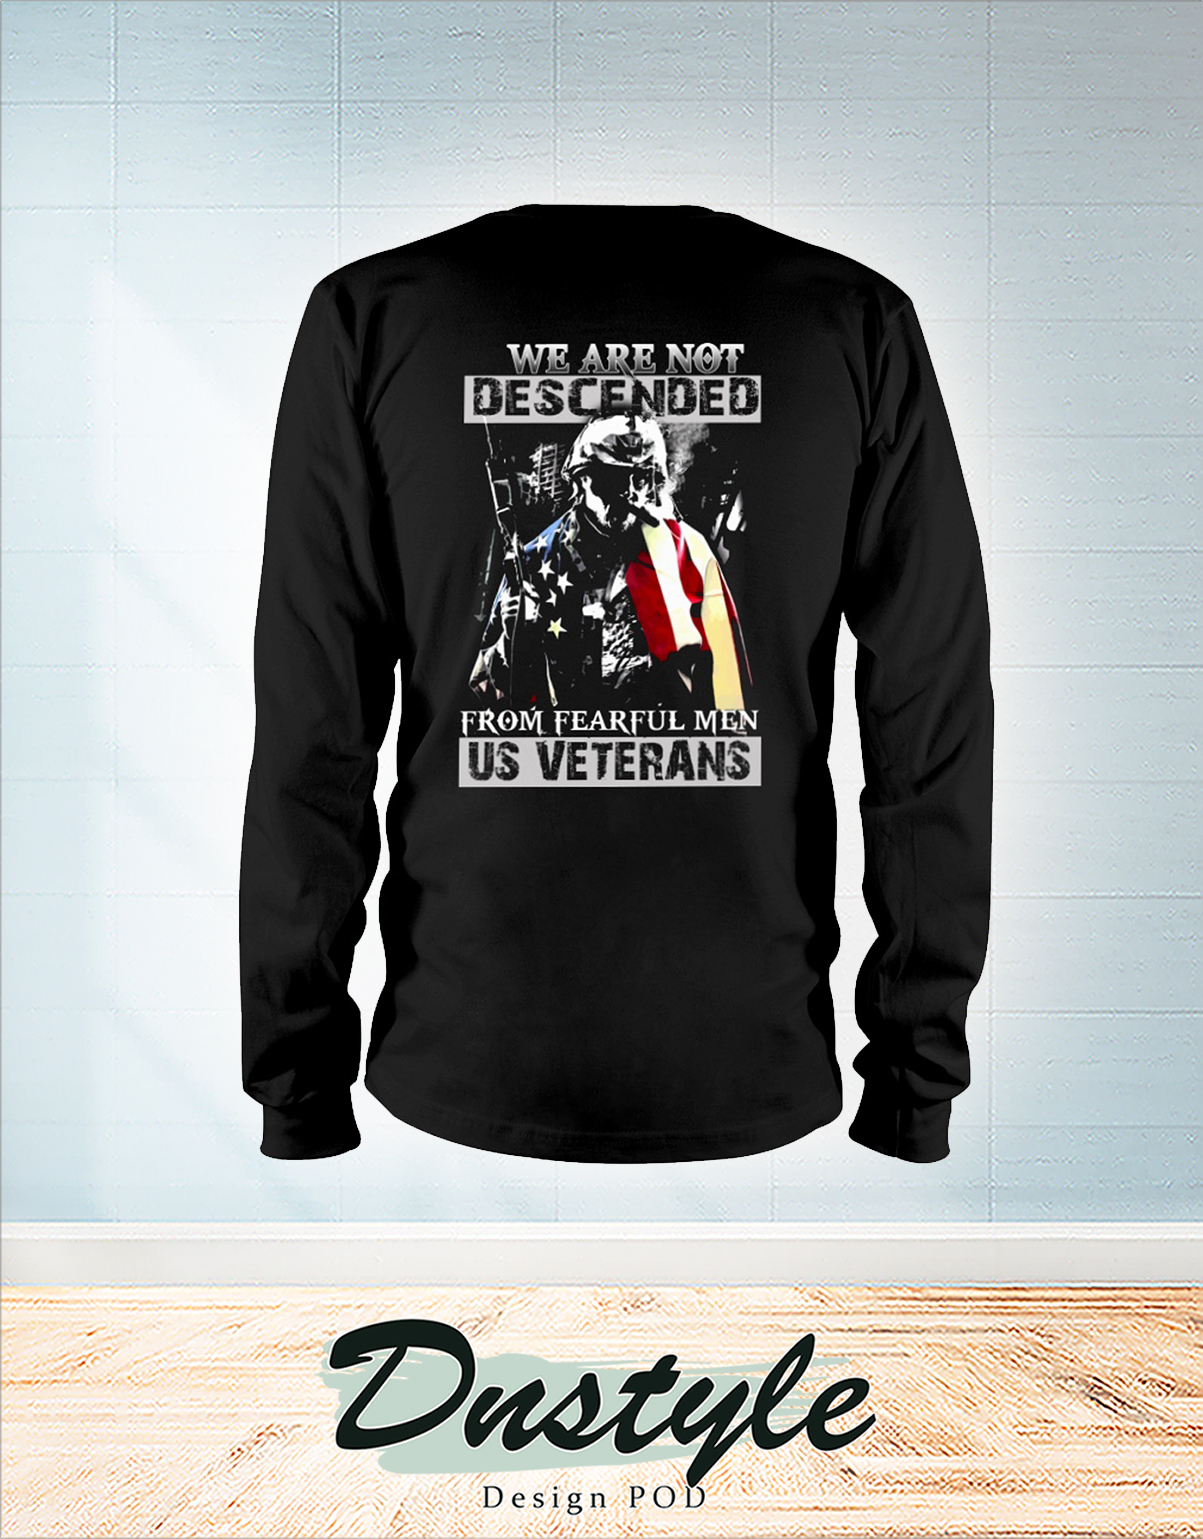 We are not descended from fearful men US veterans long sleeve